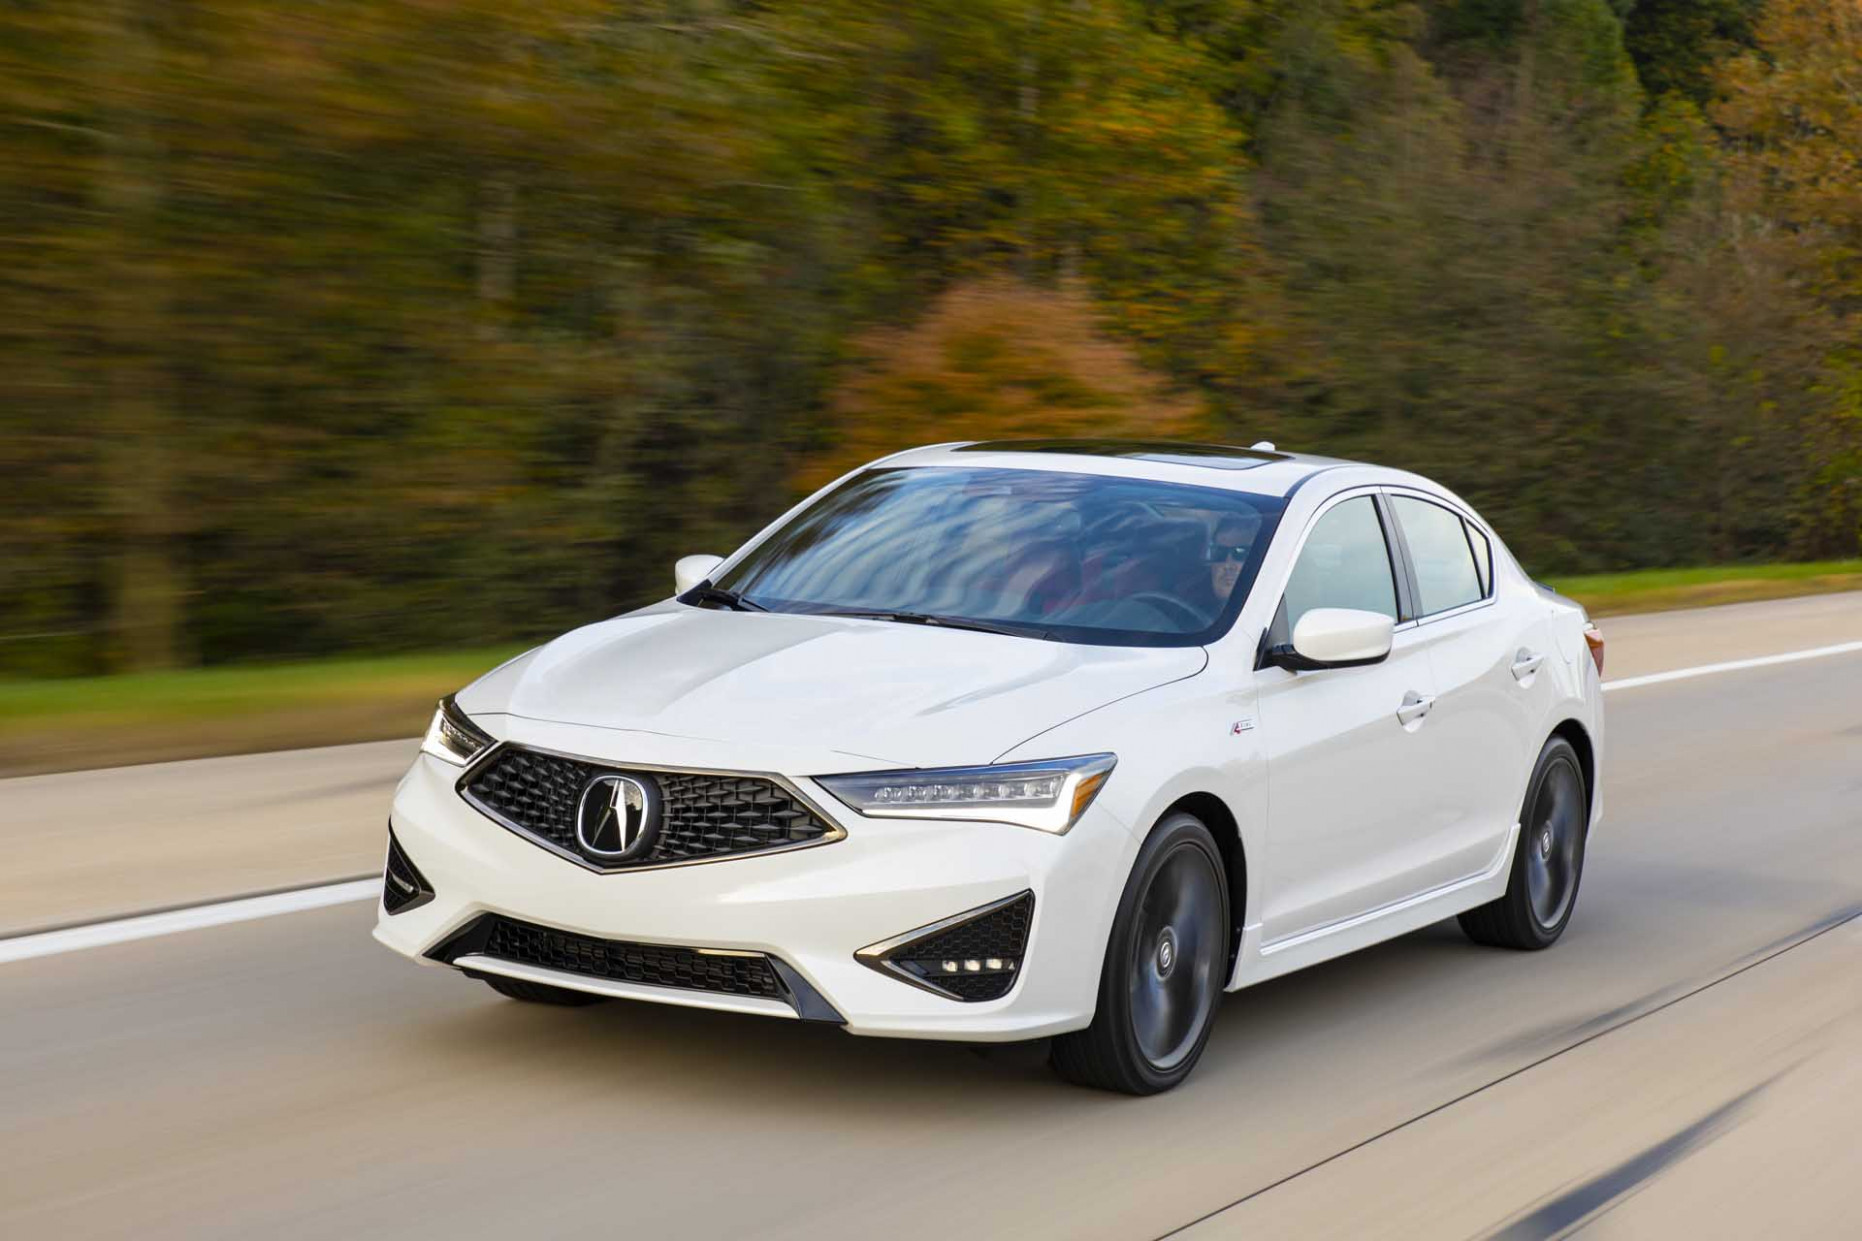 7 Acura ILX Review, Ratings, Specs, Prices, and Photos - The ..